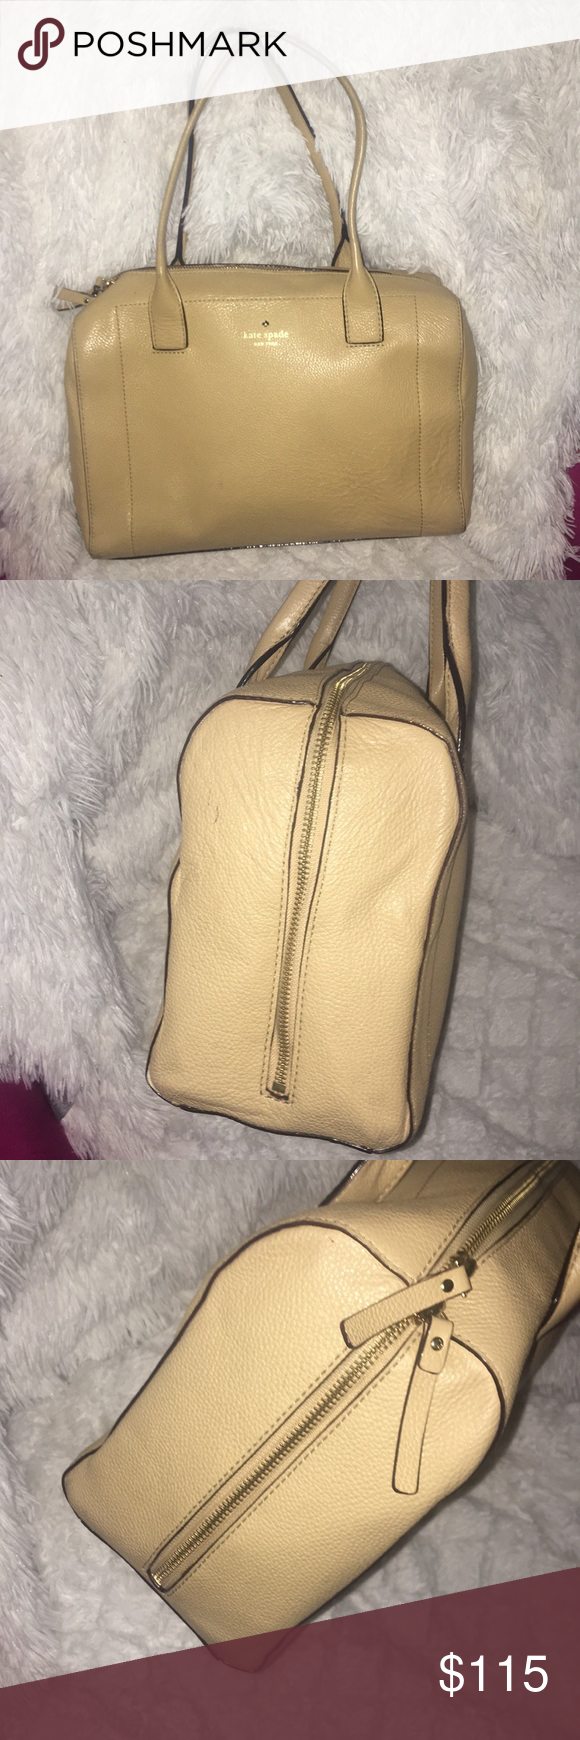 Kate Spade Nude Hand Bag 2 working zippers tan exterior orange/red exterior  Non damaged handles No trades, bundles and offers welcome! kate spade Bags  ...